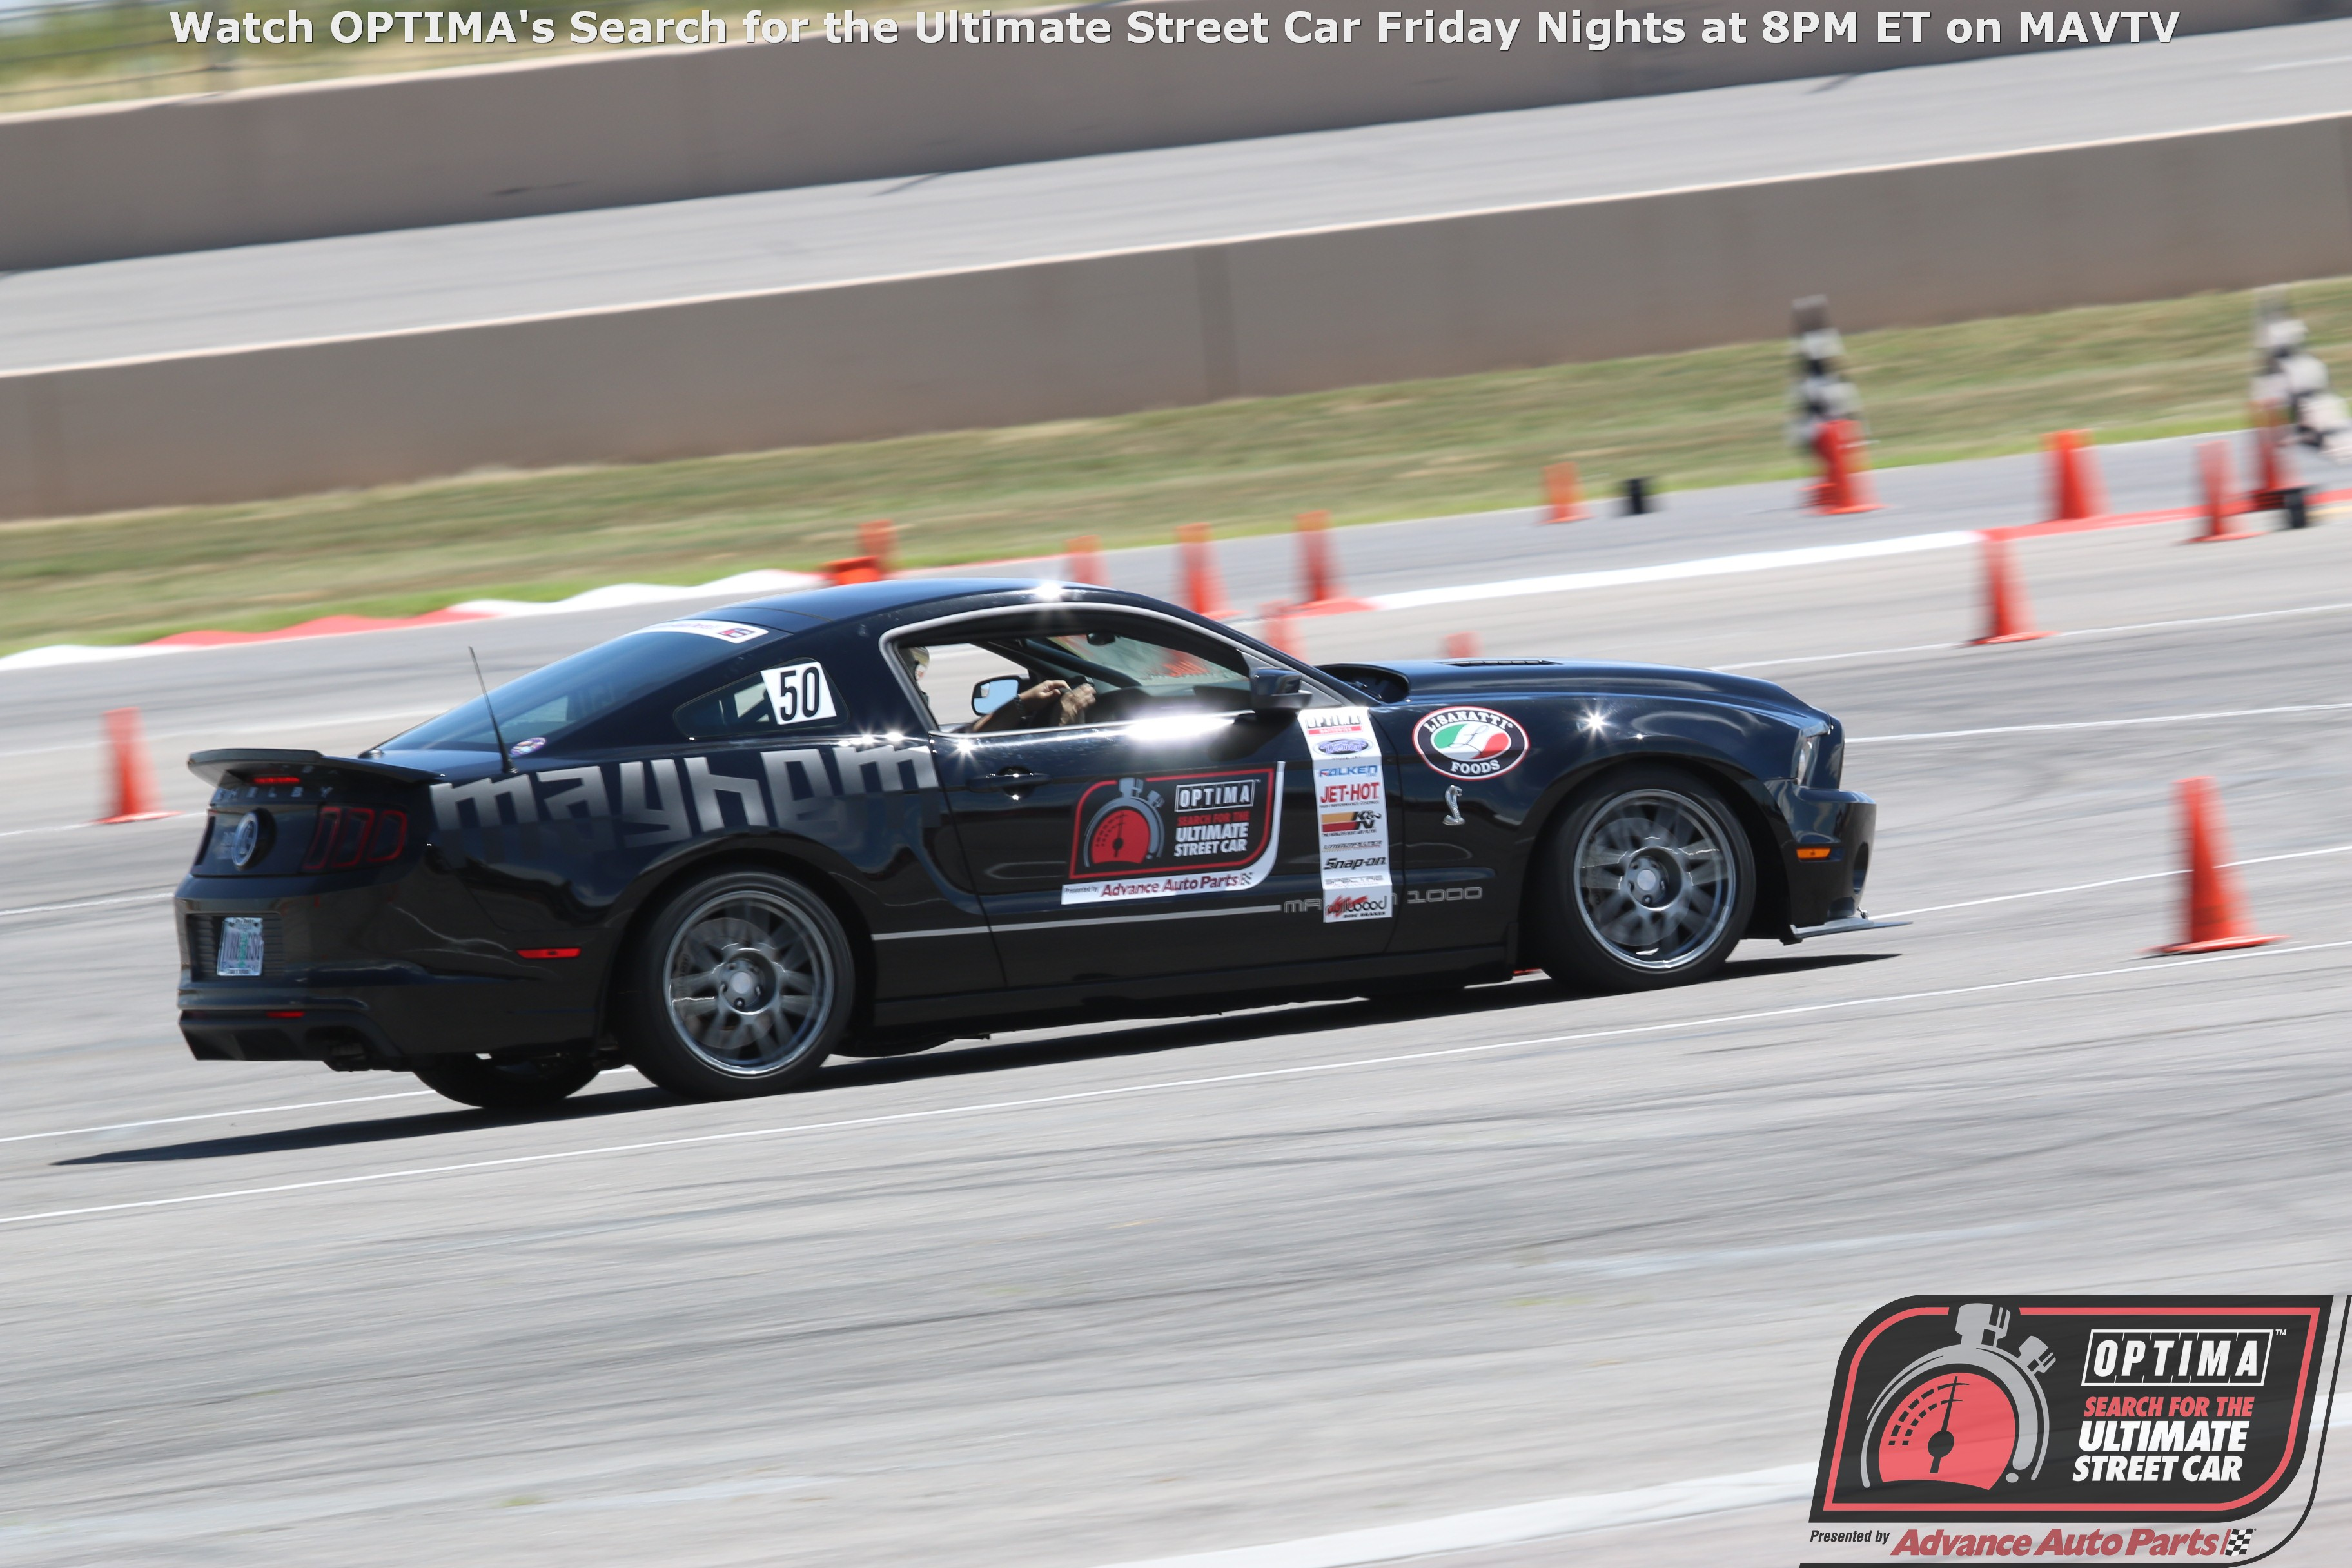 There is No Quit in Ryan Volk's Mustang (or the rest of the